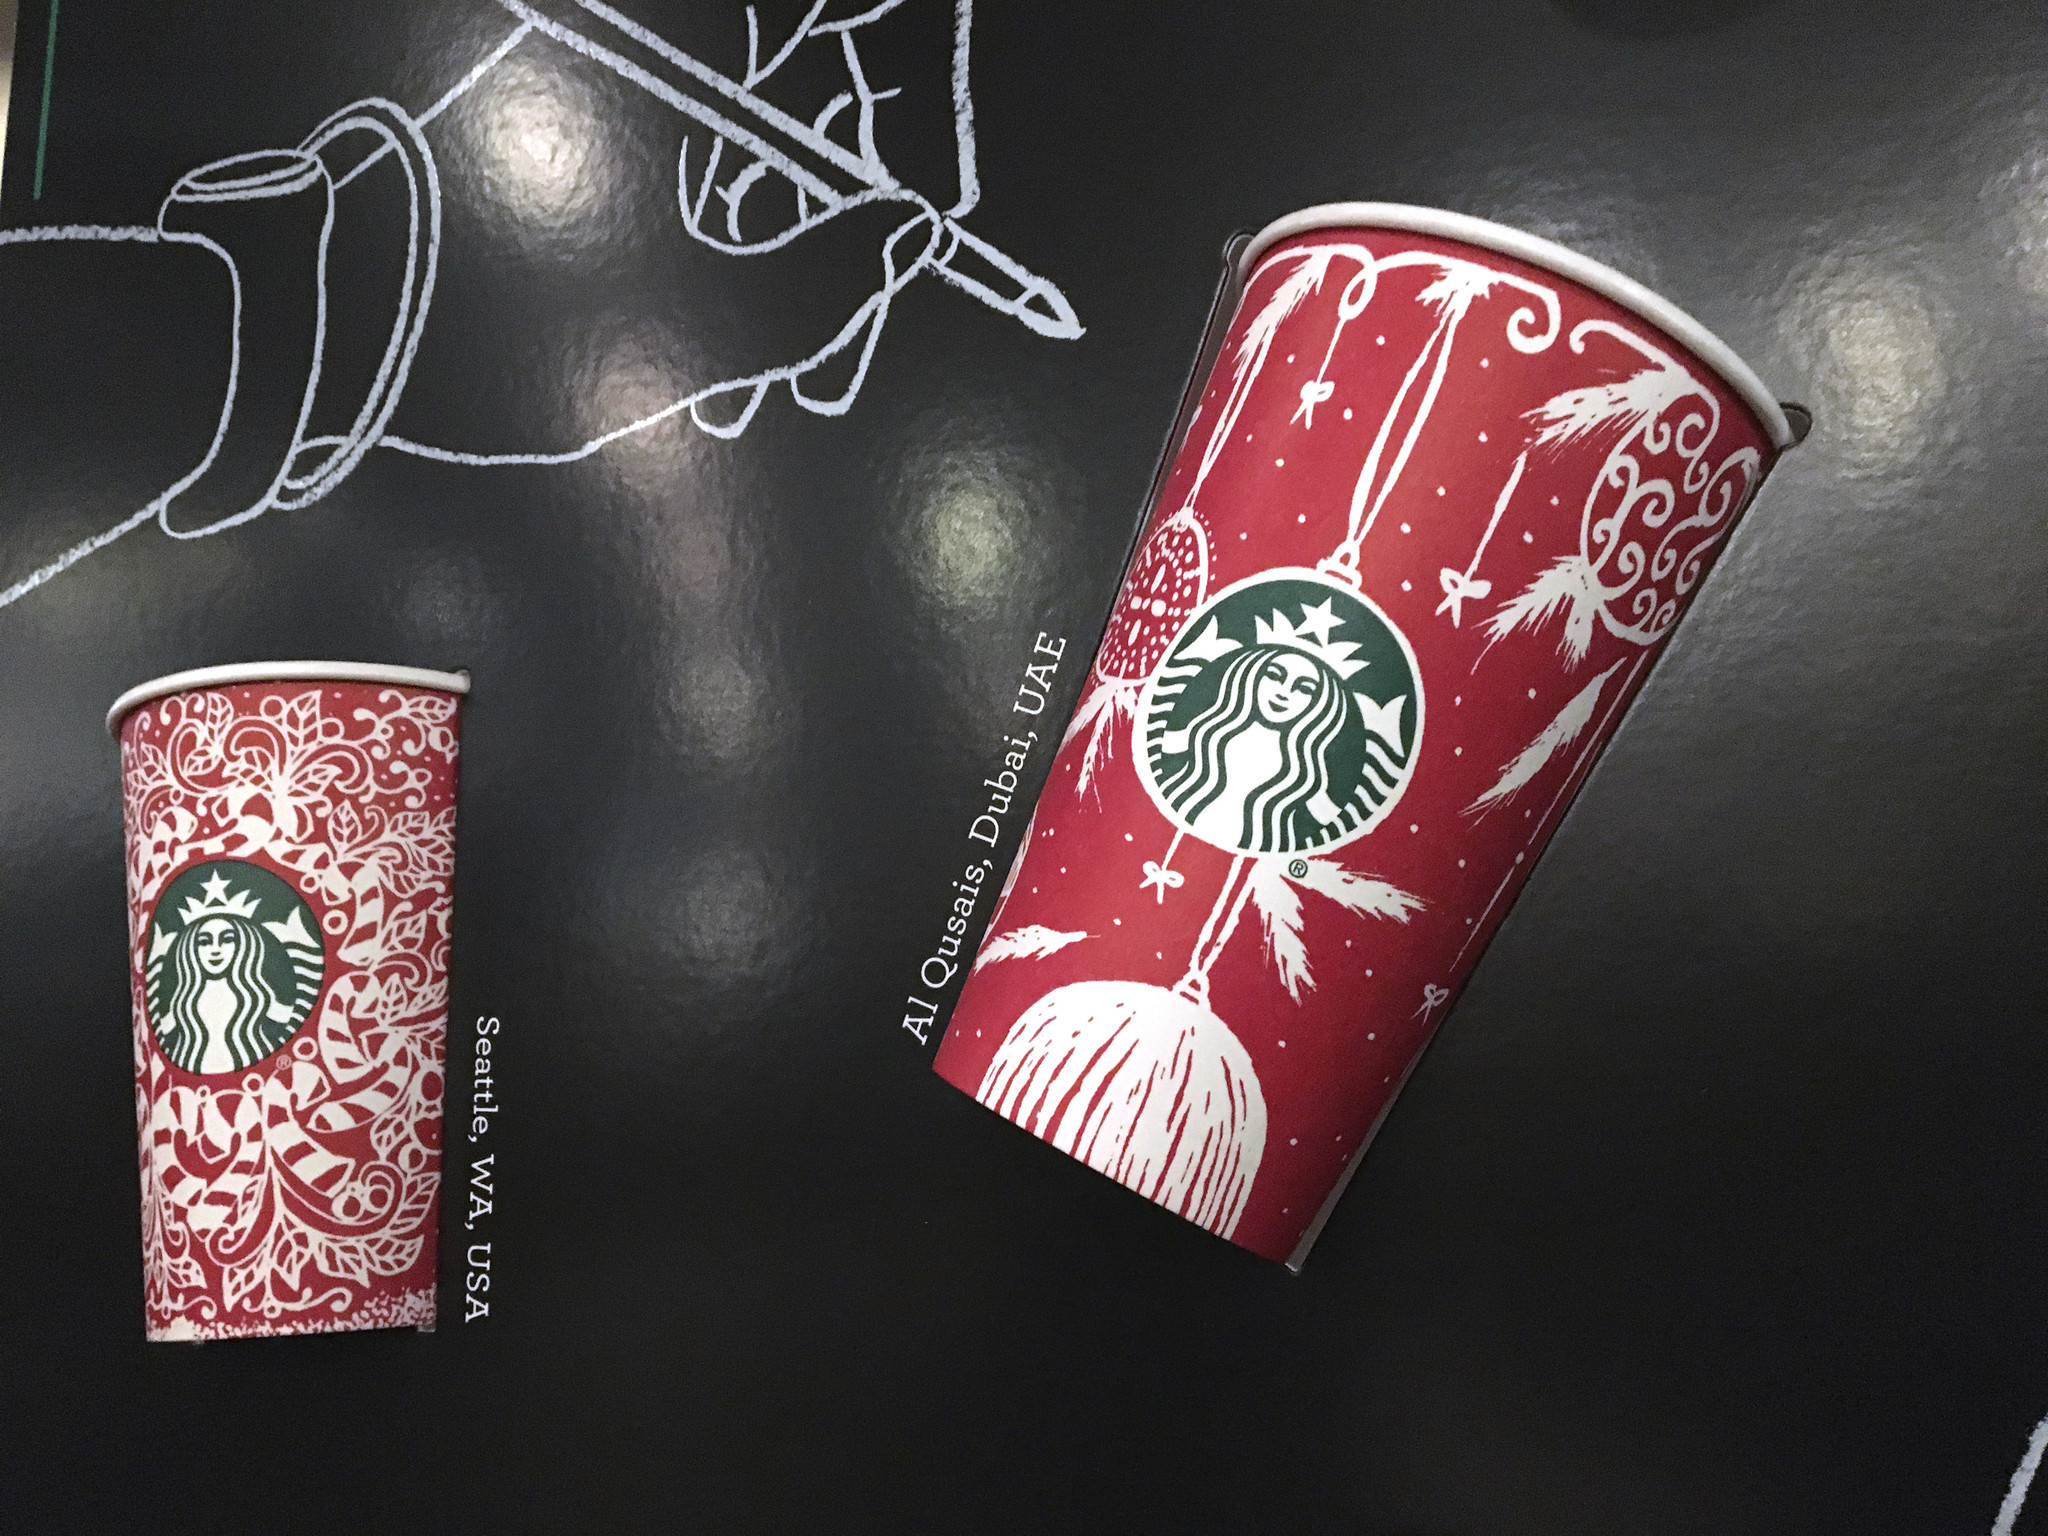 Why Starbucks cups stir up controversy - Chicago Tribune